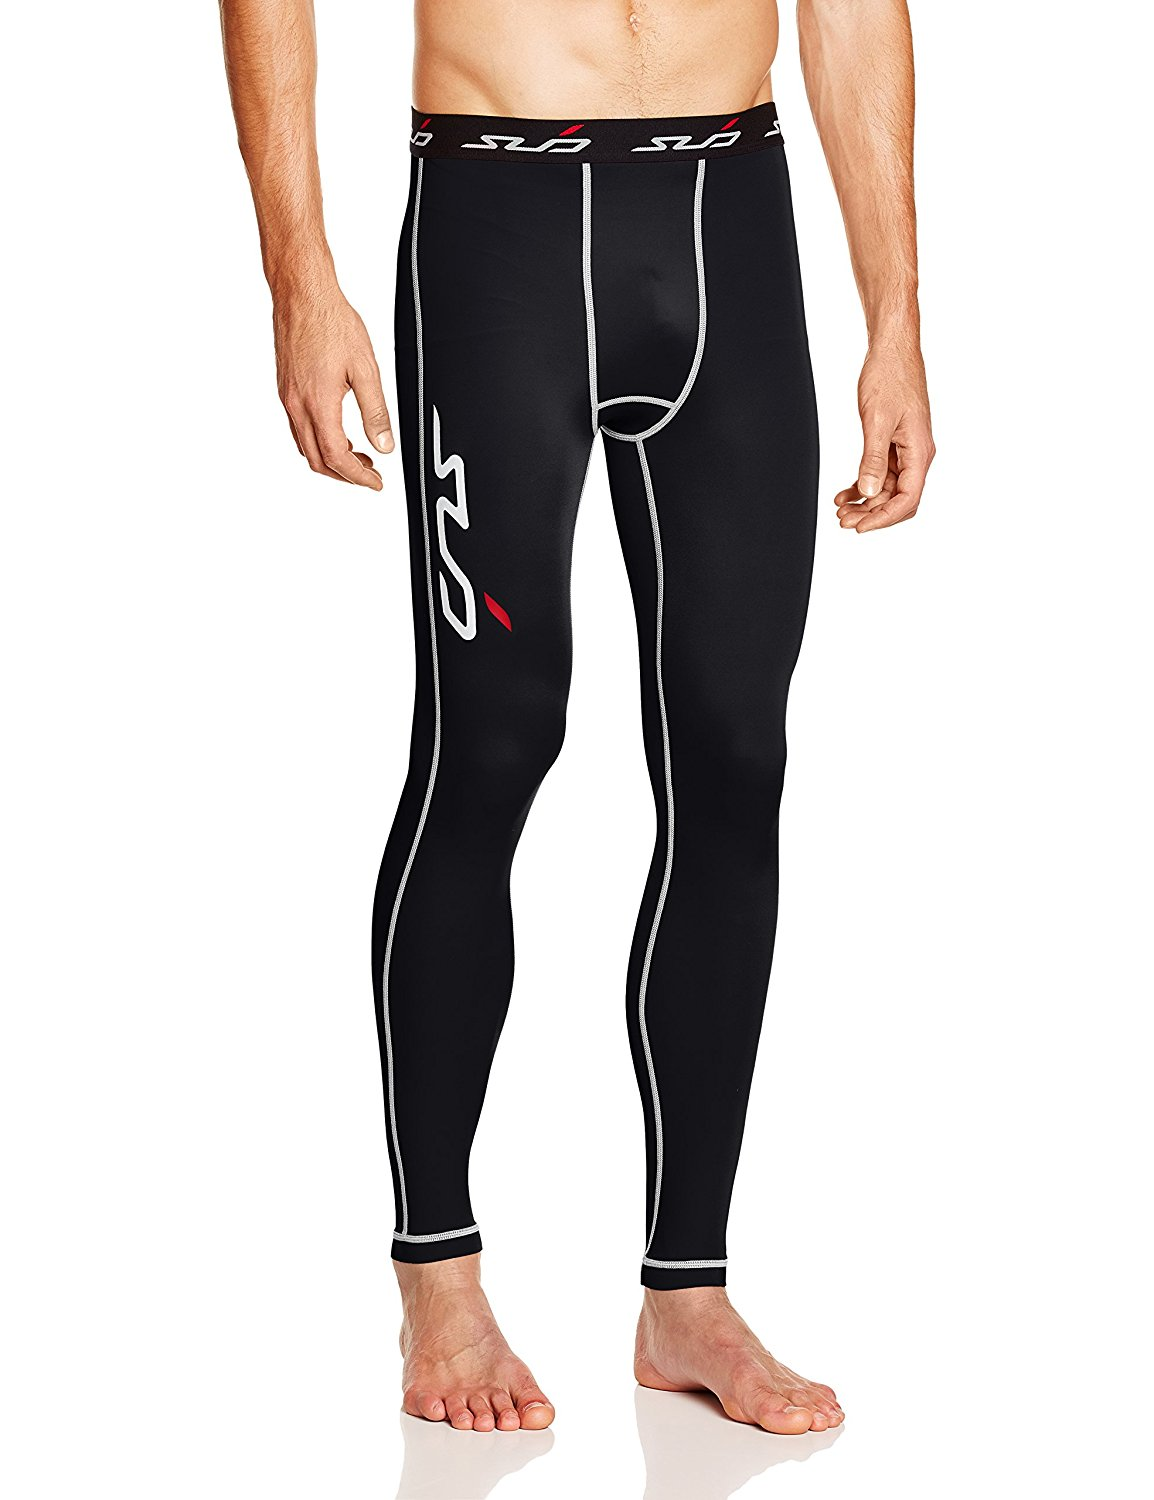 dual mens compression pants image